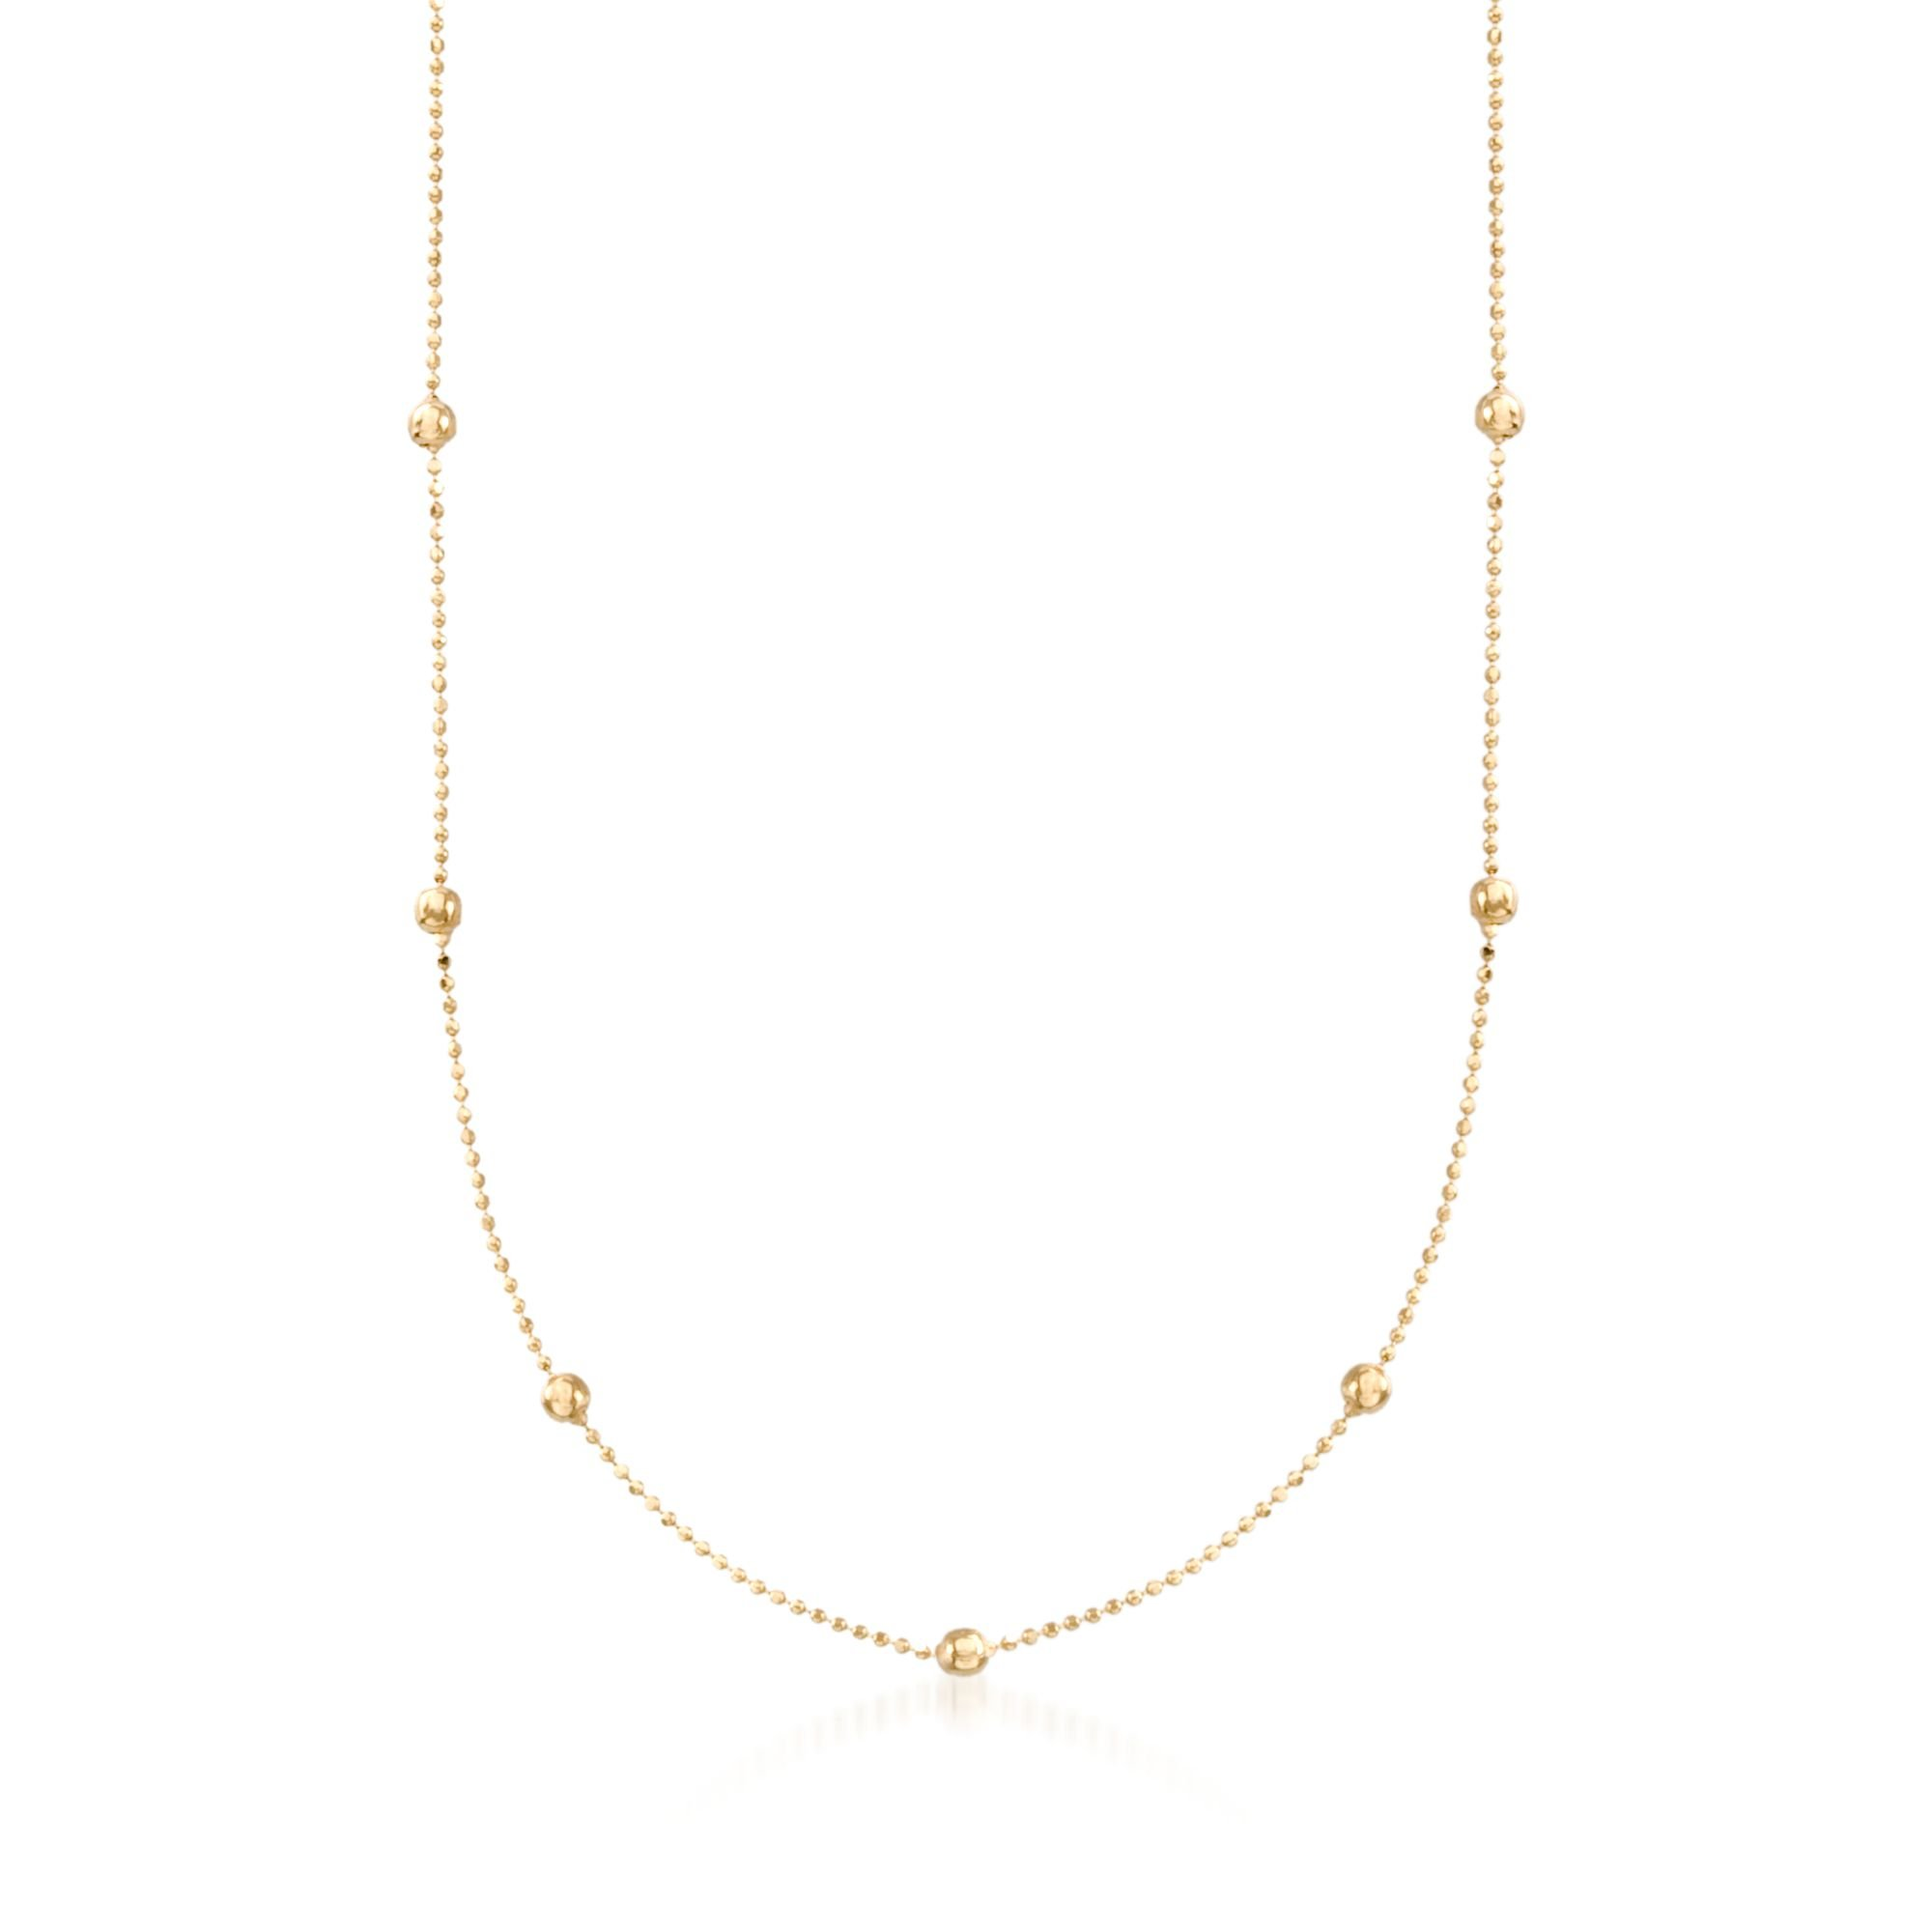 Ross-Simons 2mm 14kt Yellow Gold Bead Station Necklace